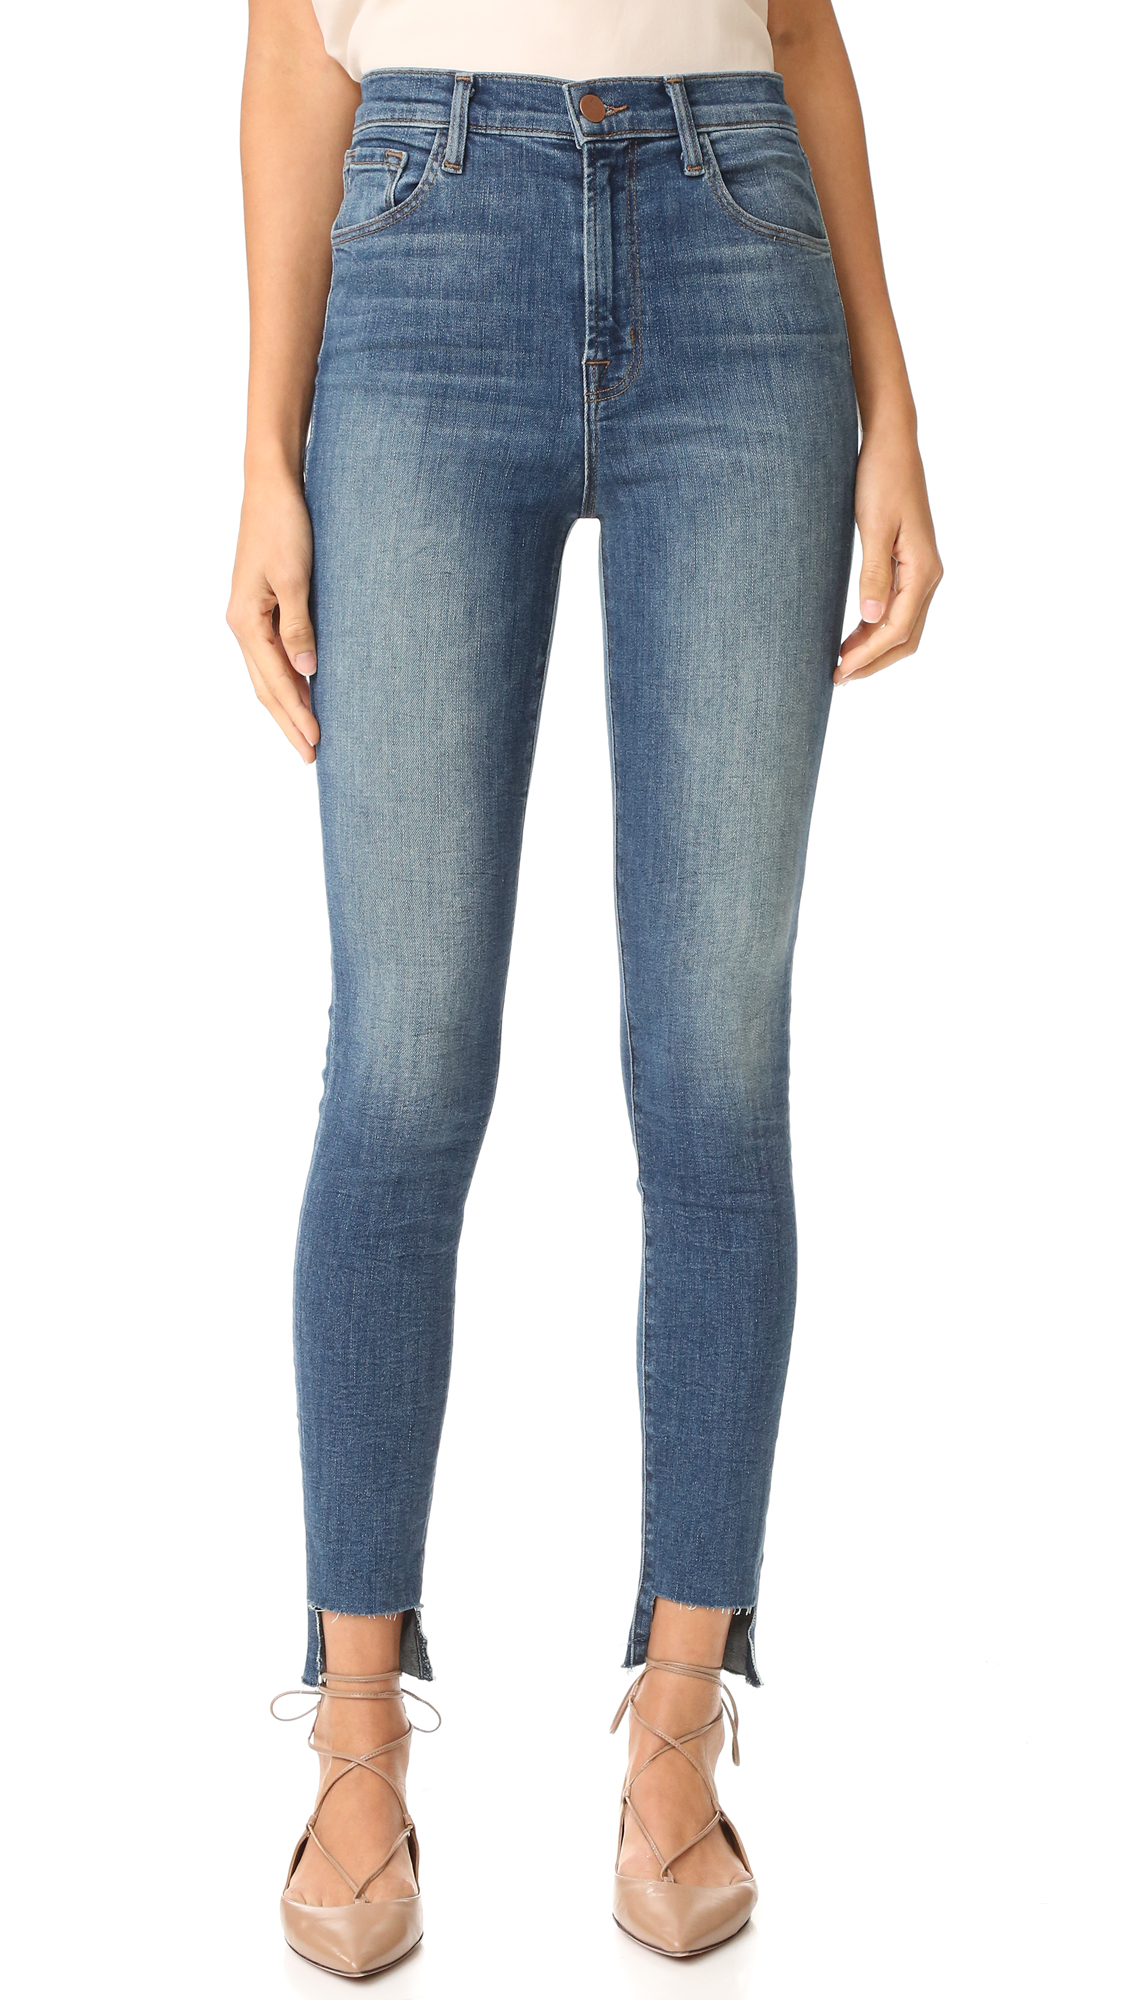 High waisted McGuire Denim skinny jeans. The frayed, cutout hem creates an undone finish. 5 pocket styling. Button closure and zip fly. Fabric: Lightweight stretch denim. 93% cotton/5% polyester/2% elastane. Wash cold. Made in the USA. Imported materials.